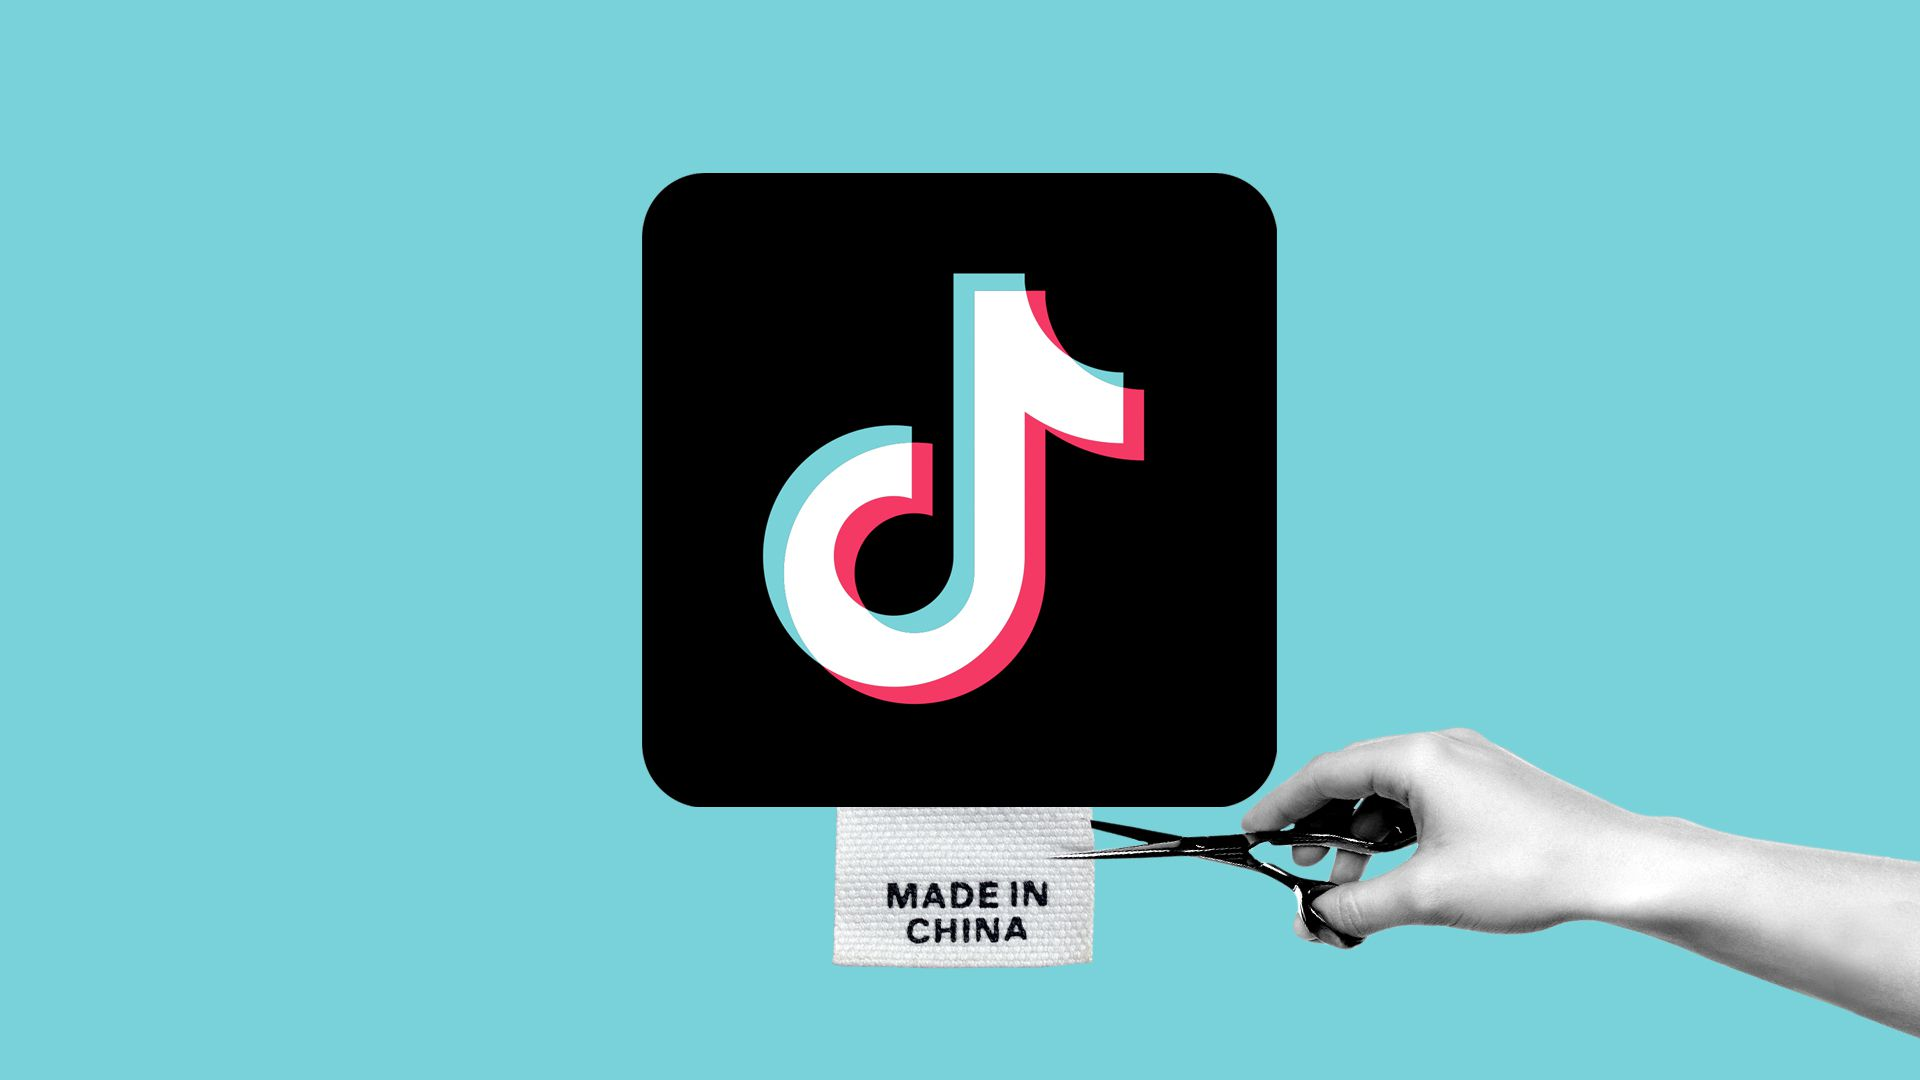 """In this illustration, a label reading """"Made in China"""" is attached to the TikTok logo"""